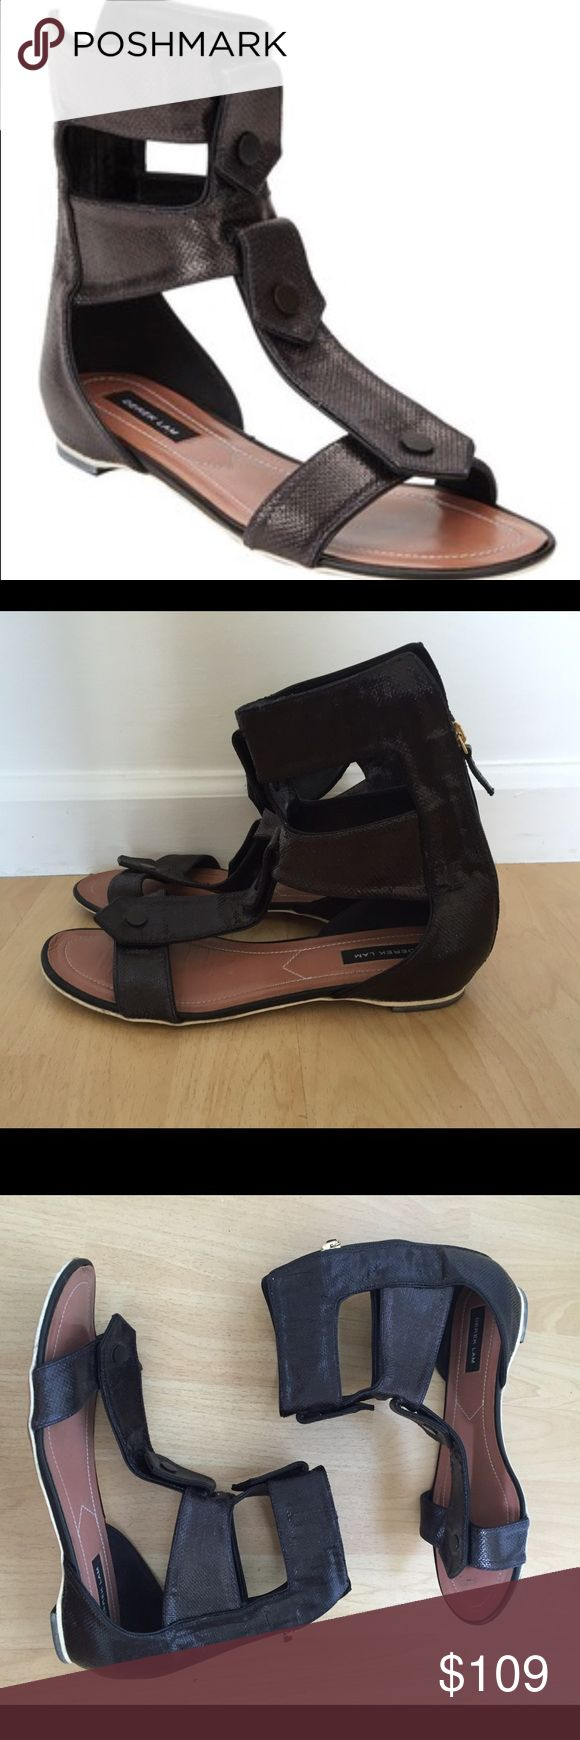 Derek lam flat gladiator sandals Black raffia Derek lam runway collection sandals size 10 in great condition Derek Lam Shoes Sandals